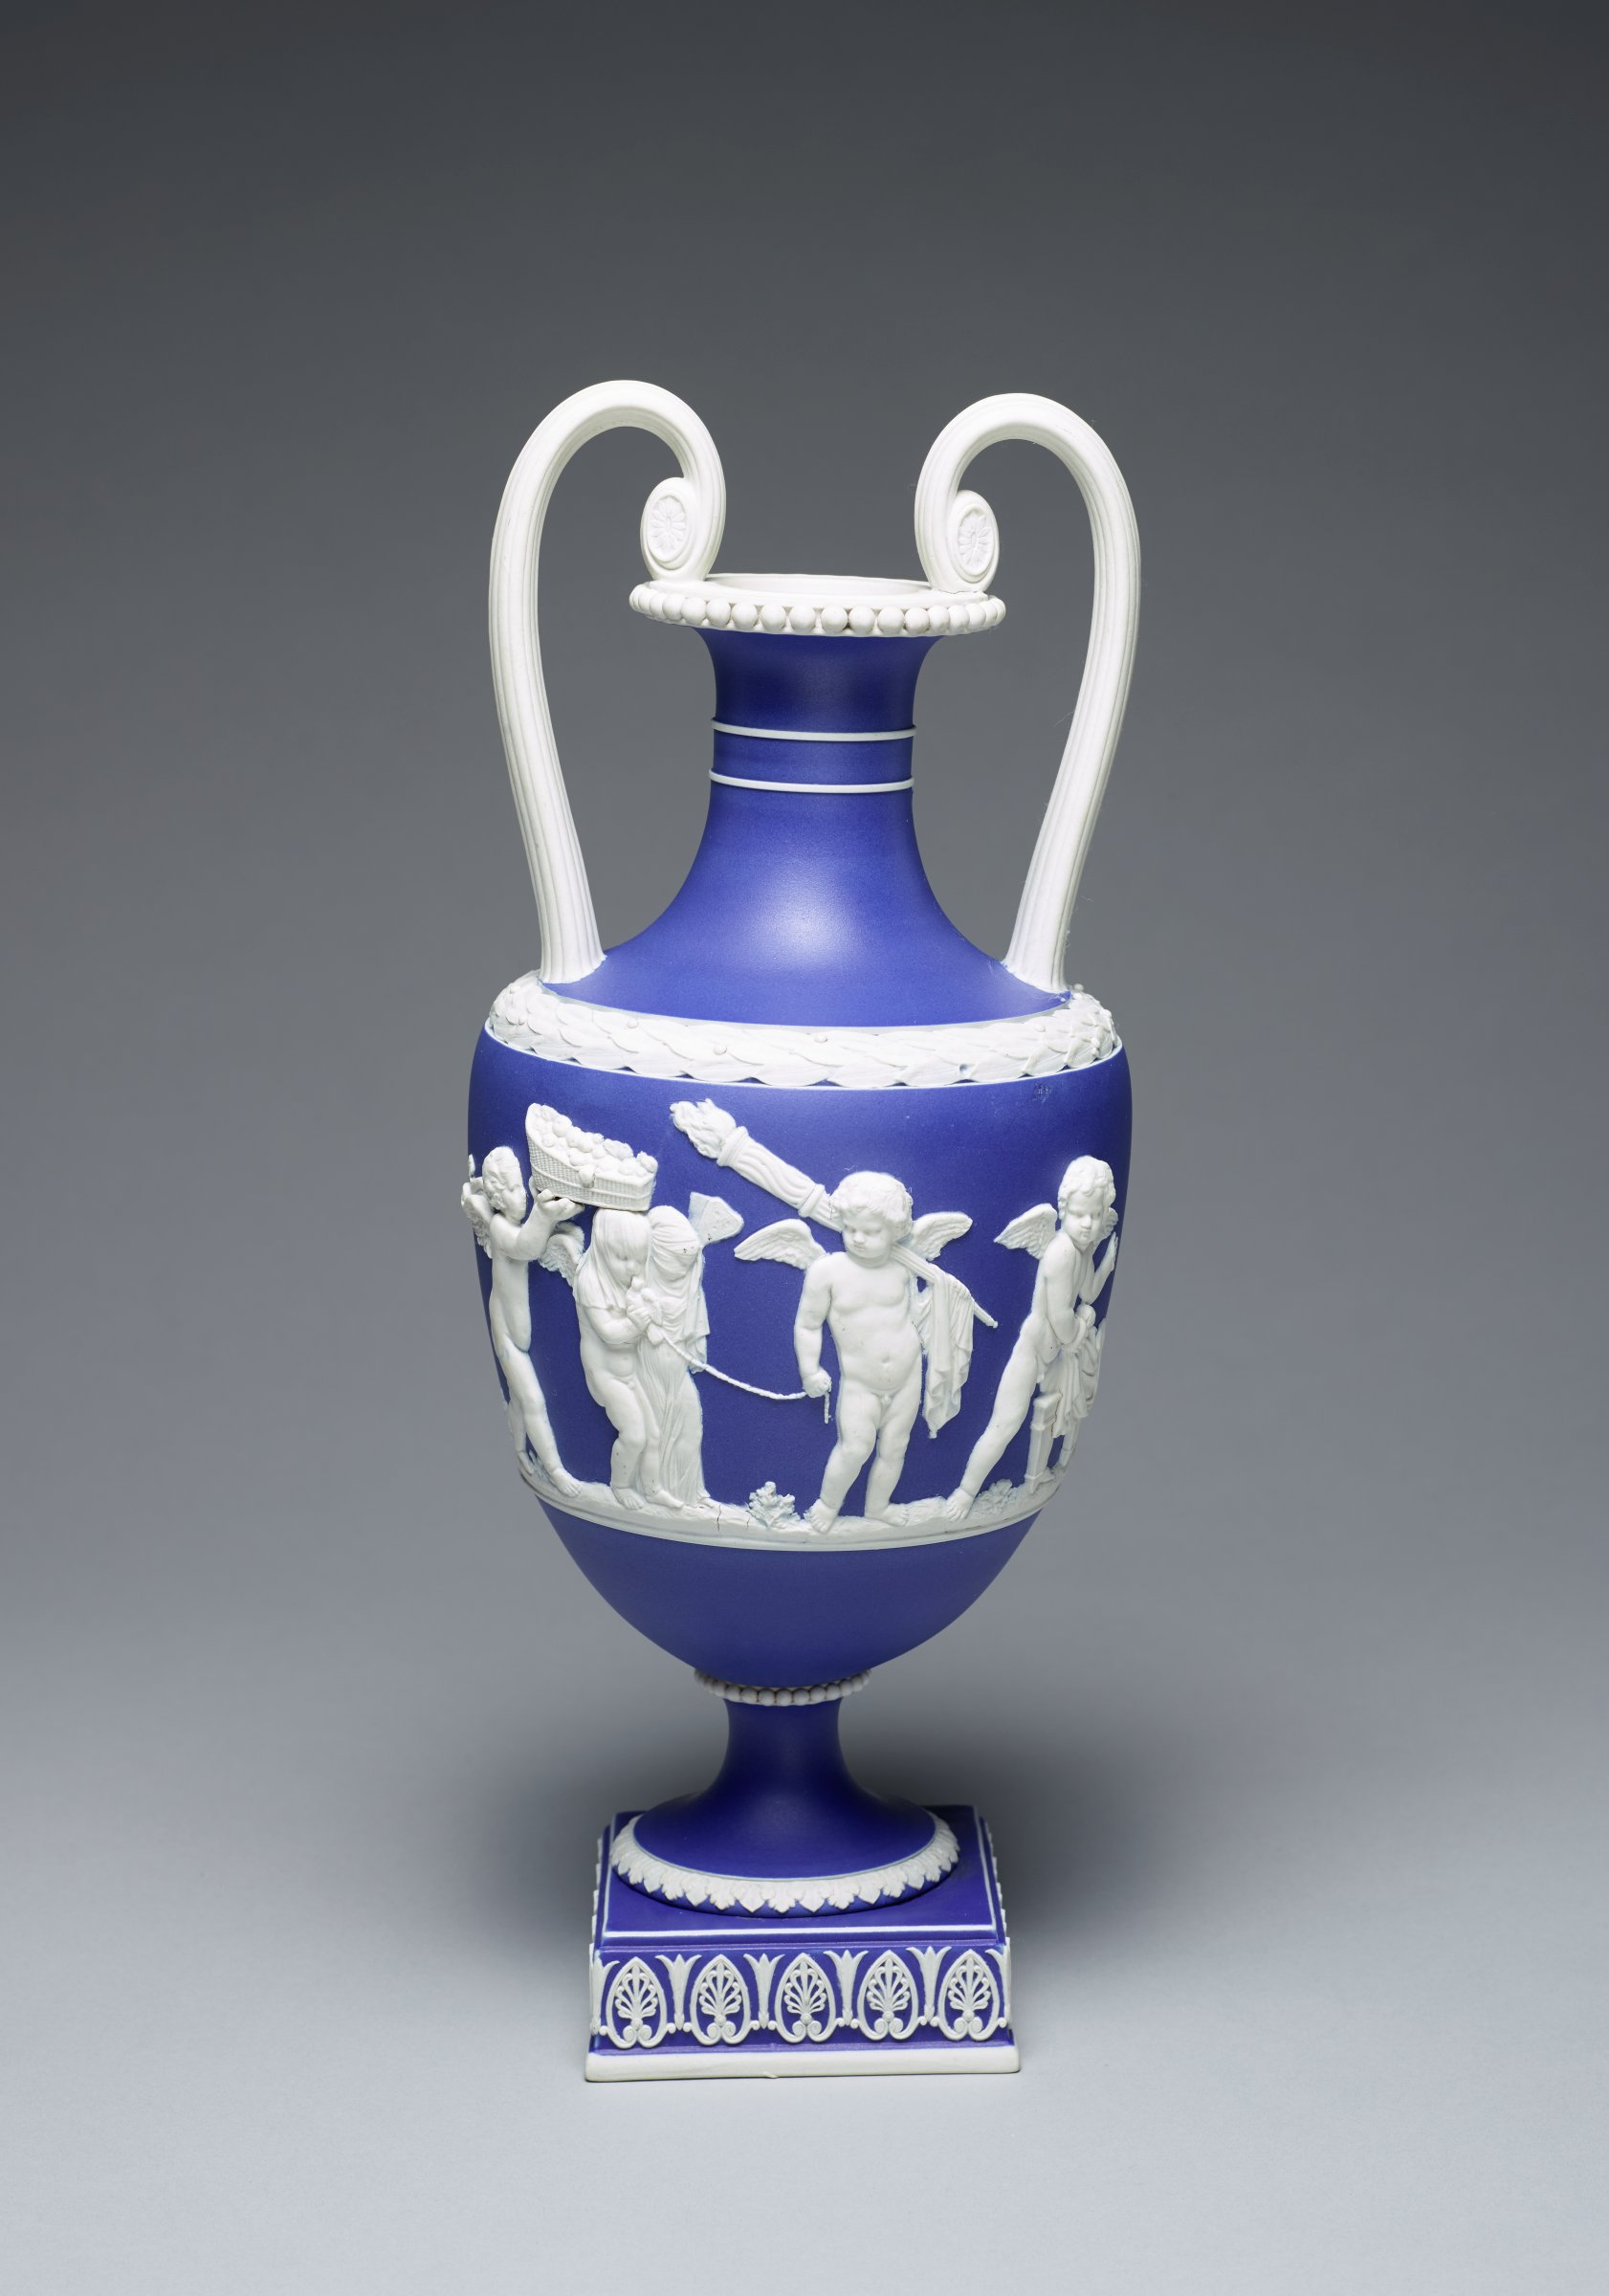 Tall vase of deep blue jasper dip with white jasper relief decoration, resting on square plinth decorated with white anthemion motifs, the round foot with overlapping acanthus leaves and beading at the joint, the main body with applied white relief of on one side the Marriage of Cupid and Psyche, the other side left blank, the shoulder with a wide band of overlapping laurel leaves, with two scrolled handles and beading at the lip, the neck with a pair of thin white parallel bands.